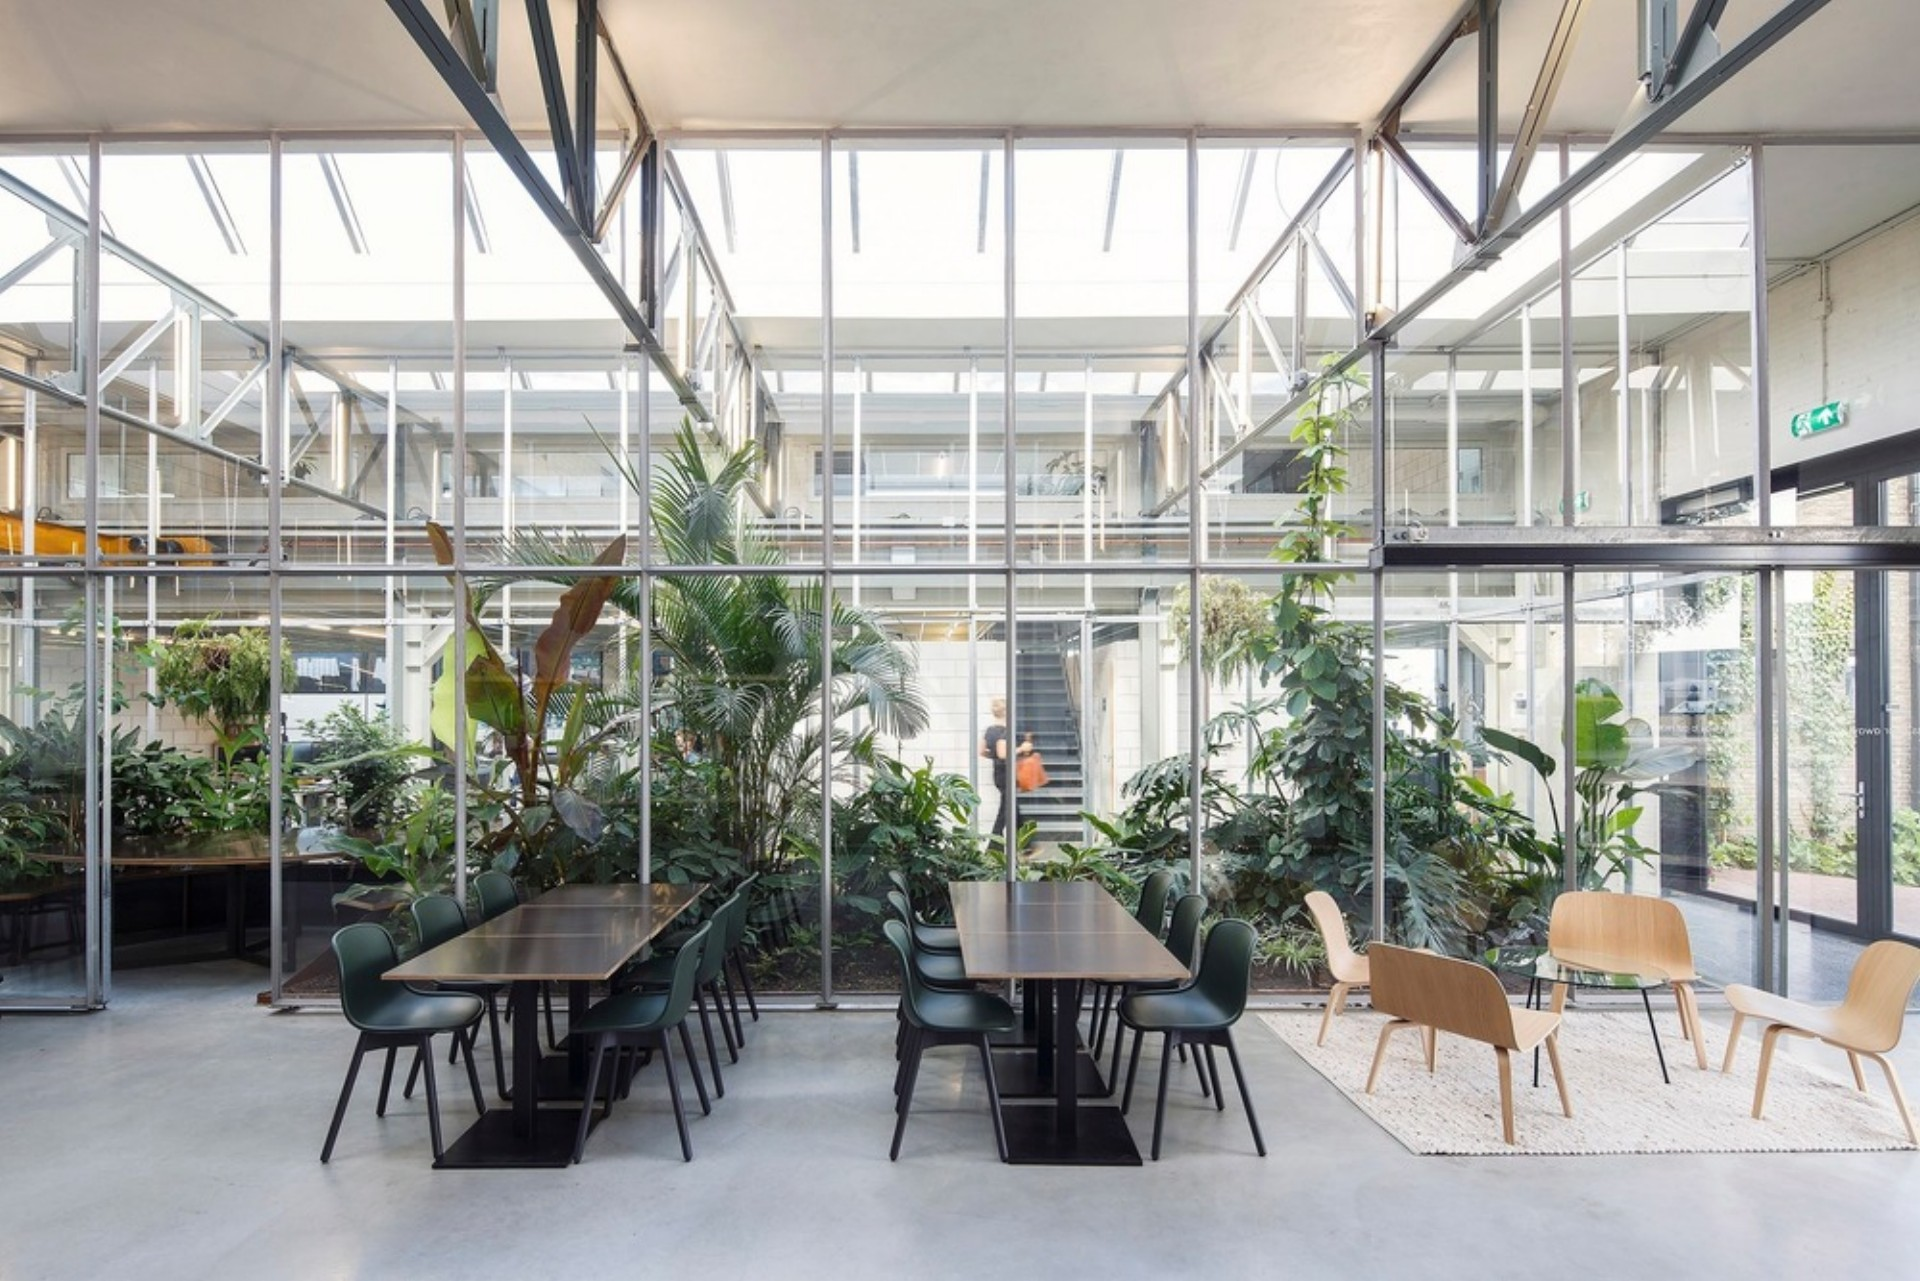 Interior Design Amsterdam Winners Of The Frame Awards For Interior Design At